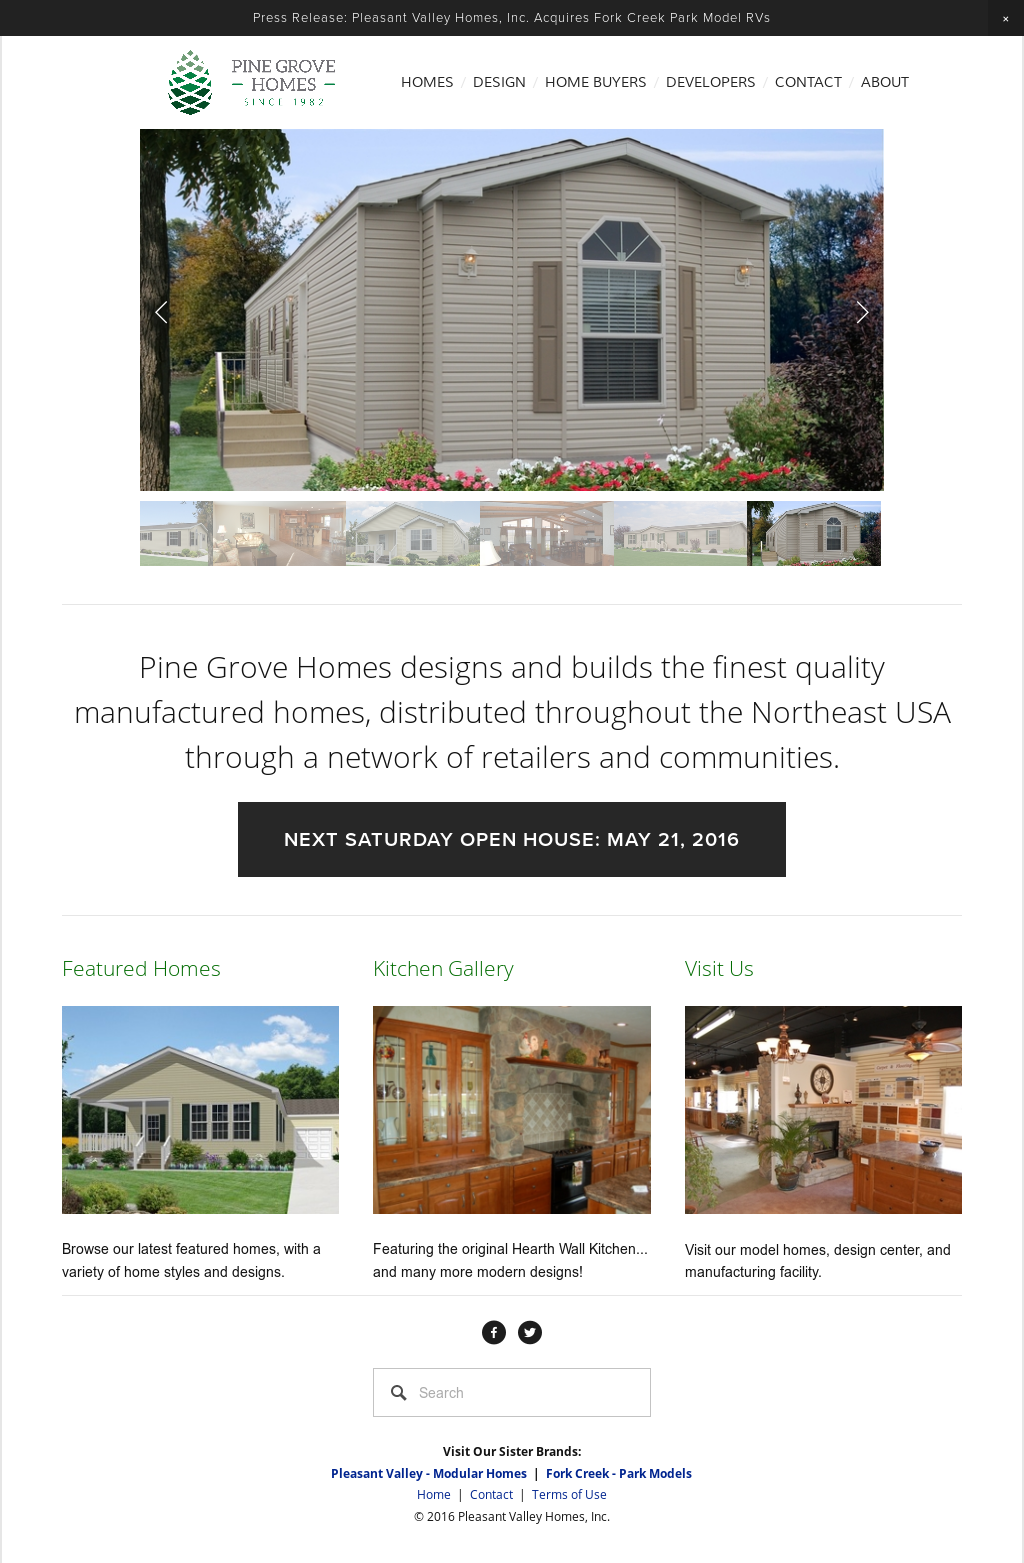 Pine Grove Manufactured Homes Compeors, Revenue and Employees ... on spring valley mobile homes, live oak mobile homes, windsor mobile homes, fairmont mobile homes,